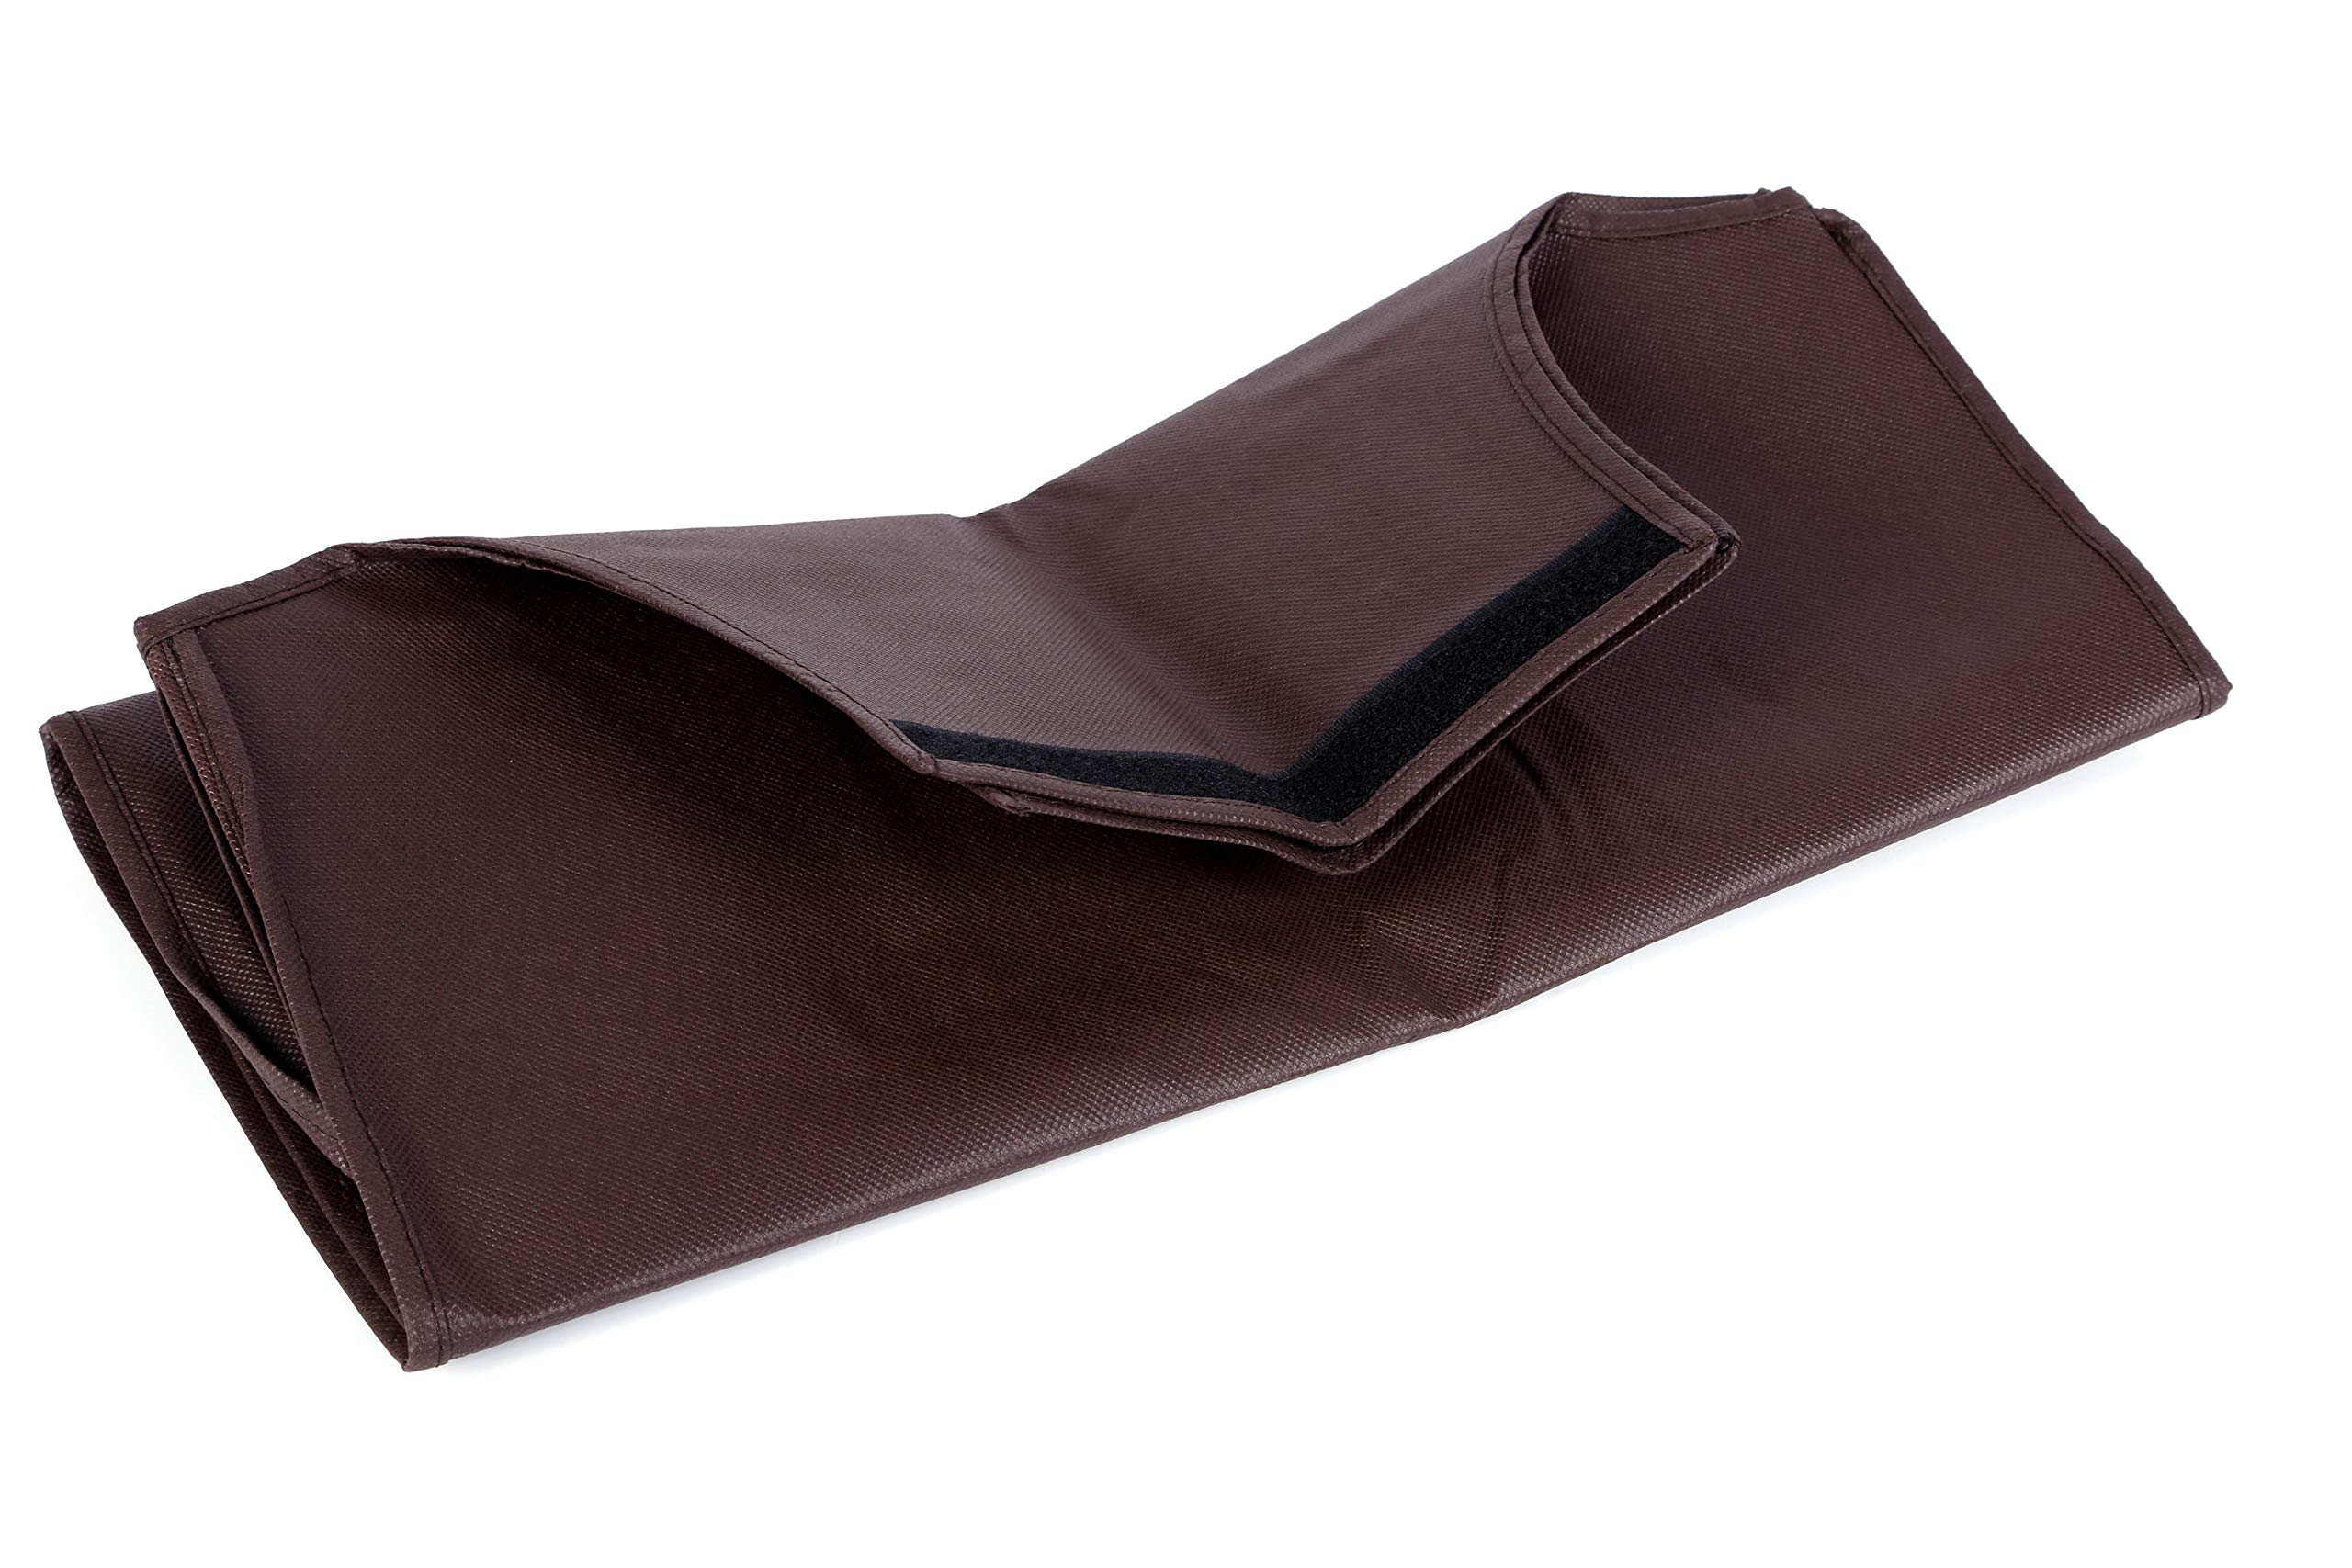 Non-elastic Suitcase Cover Waterproof Luggage Cover,3 Colors,Fits 24 Inch,Brown by CXGIAE (Image #4)